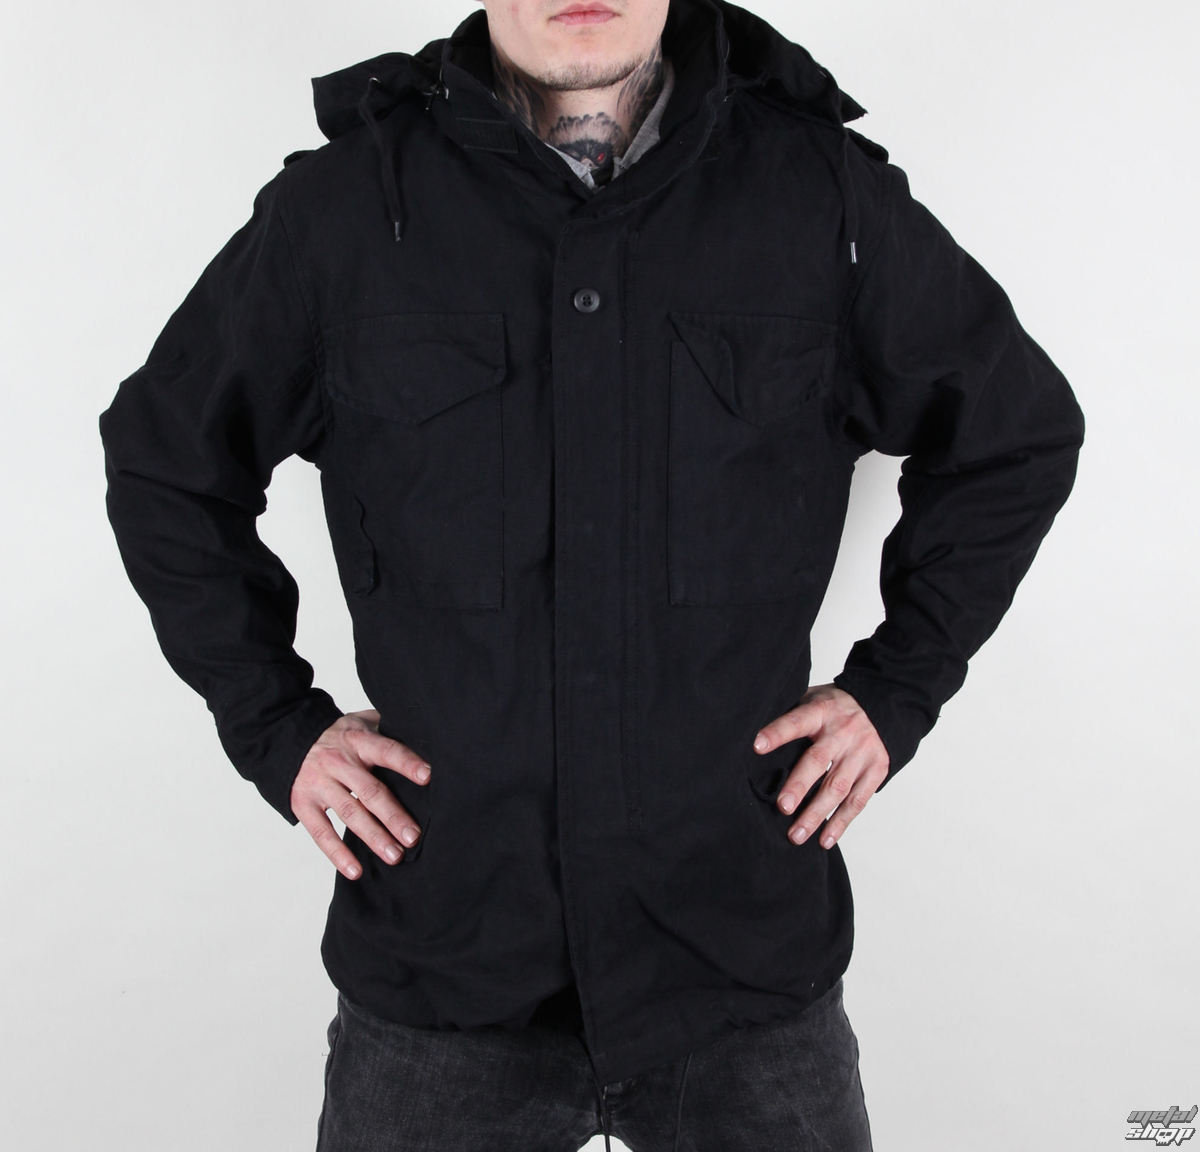 bunda pánska jarno-jesenná M65 Fieldjacket NYCO washed - BLACK - 100304